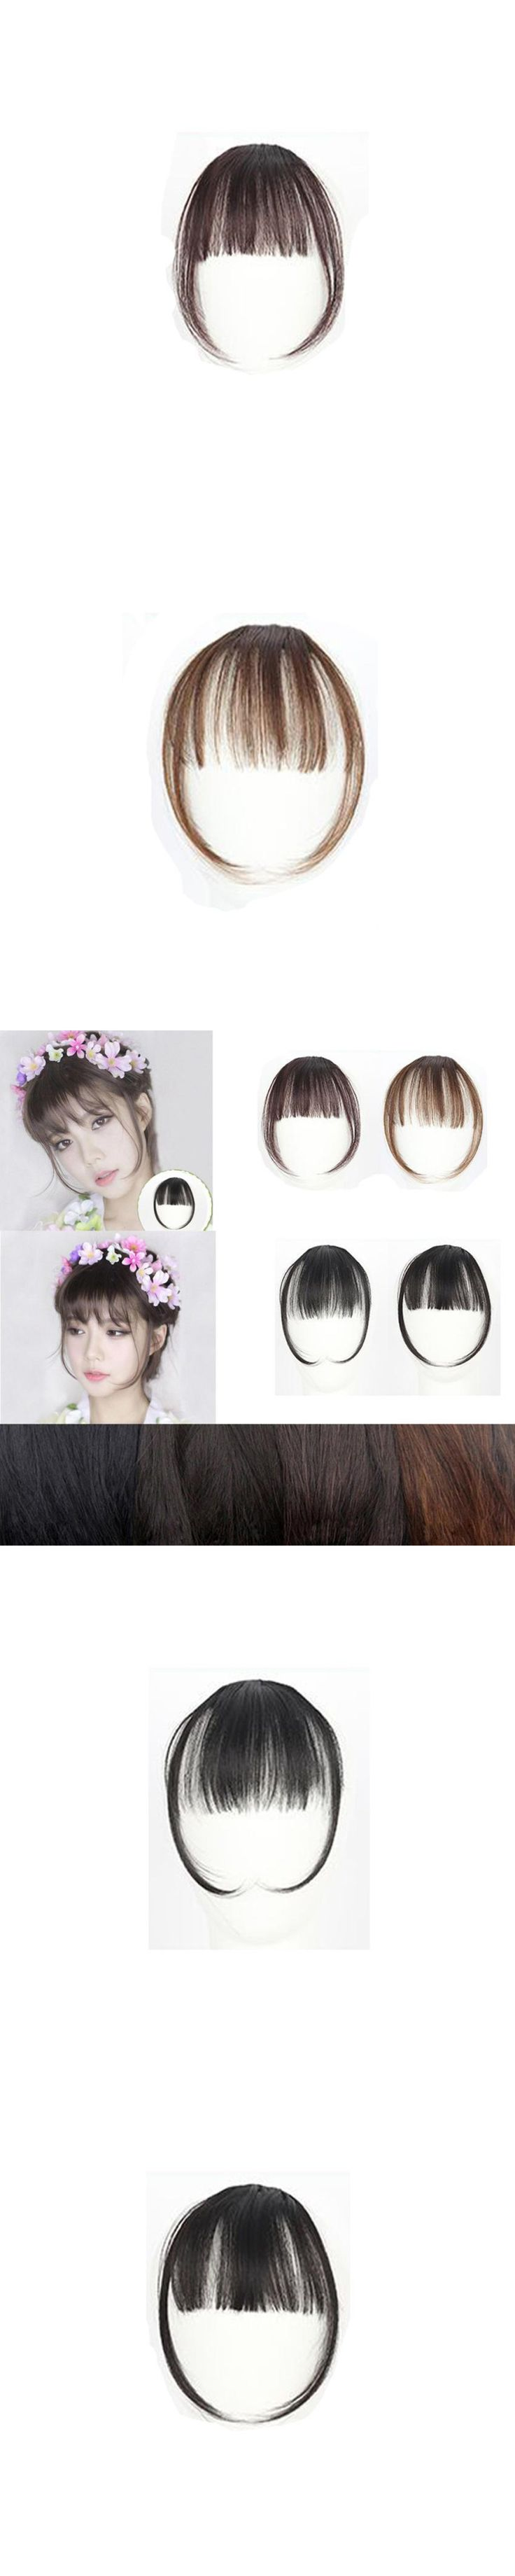 New Hair Piece Bangs Fringes Pretty Girls Clip On Clip In Front longer Hair Bang Fringe Hair Extension Sideburns Piece Thin